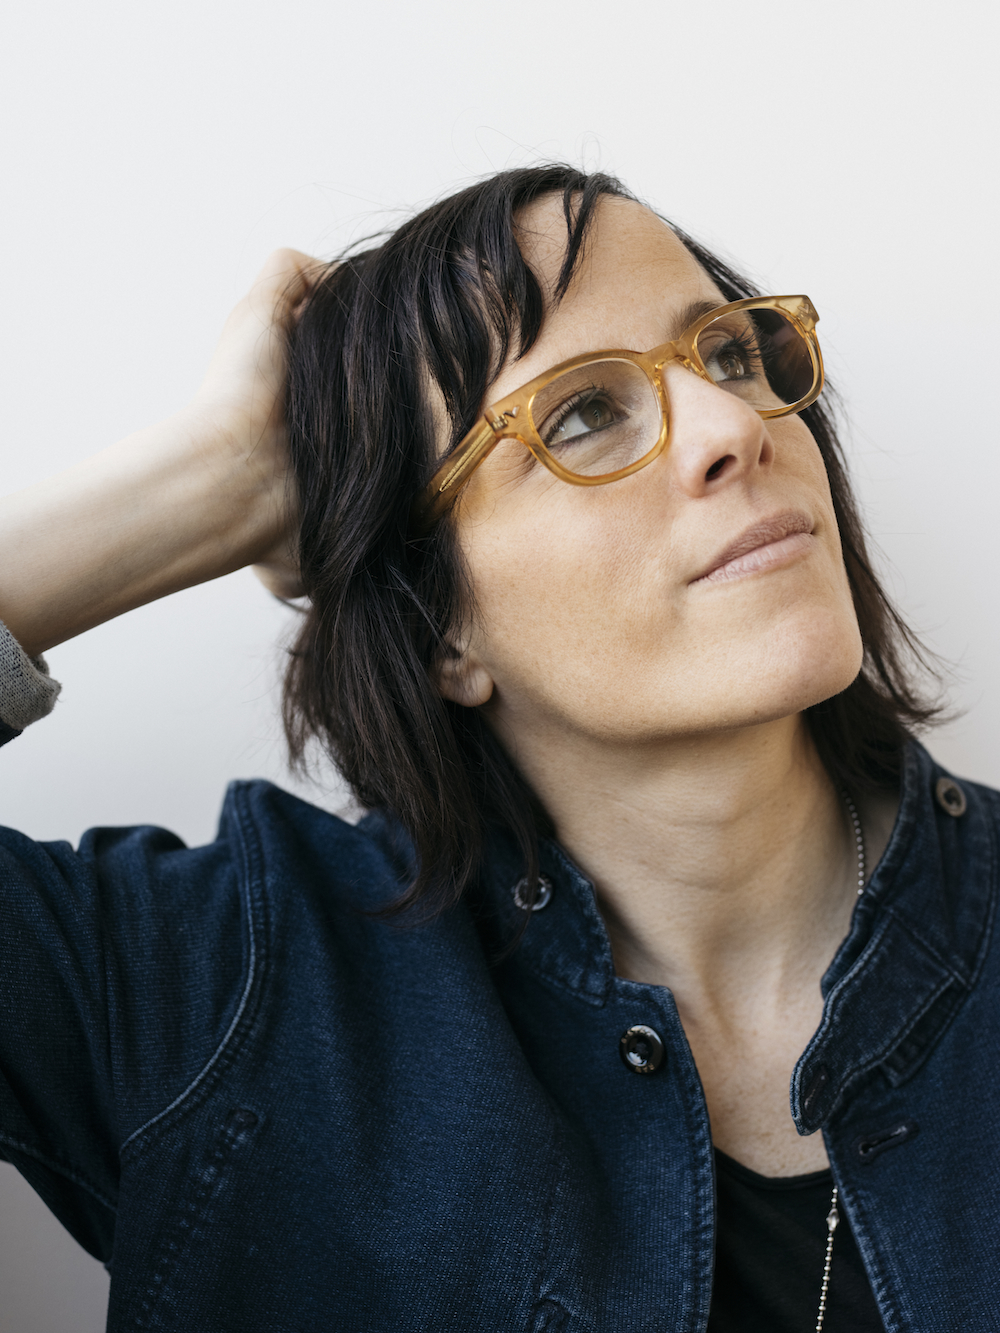 Sera Cahoone - Seattle-based singer-songwriter Sera Cahoone (formerly of Carissa's Weird and Band of Horses) creates stirring, hushed Americana music with masterfully intimate lyrics and stunning vocals.